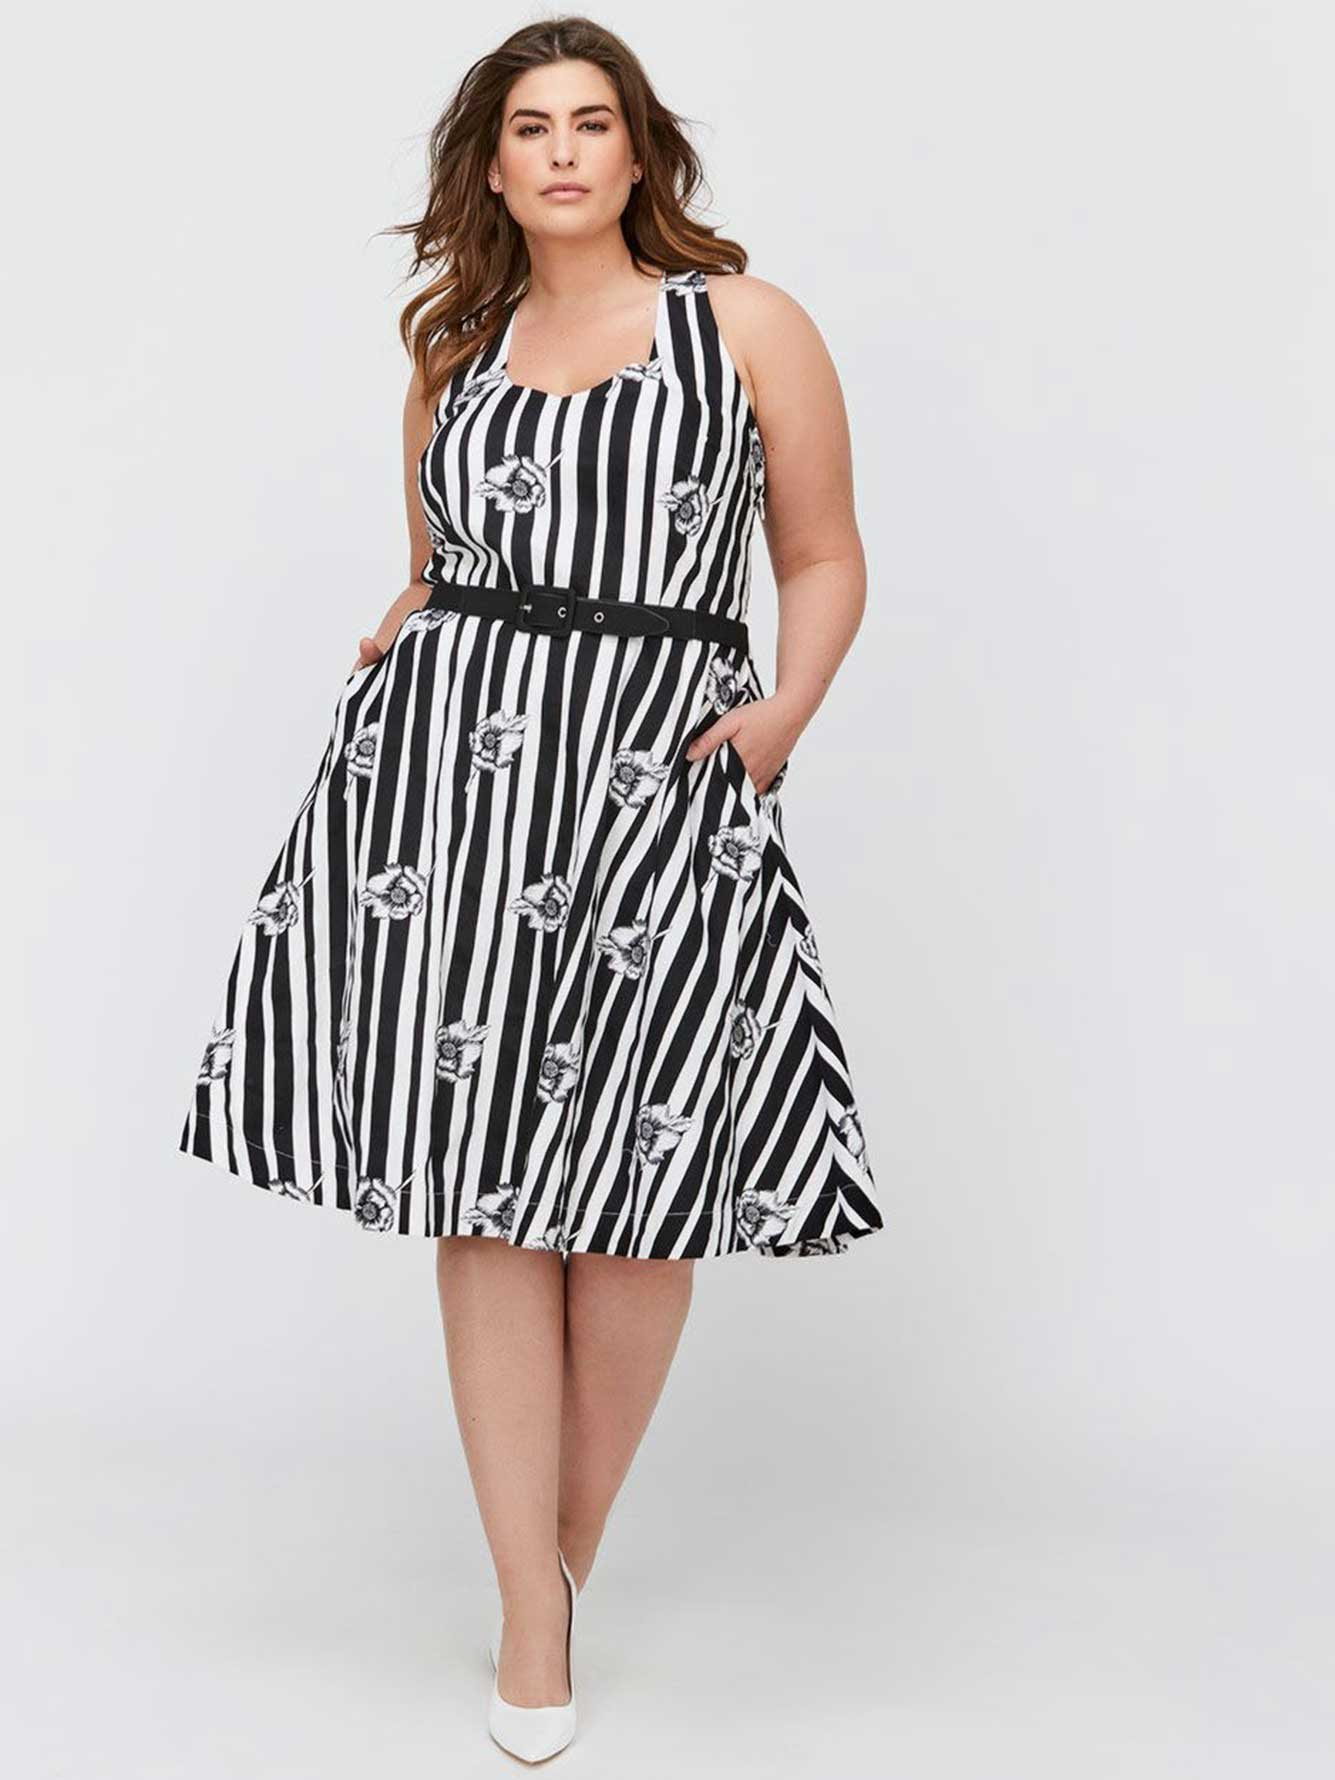 a81e6e4c1b City Chic Fit   Flare Stripes   Flowers Dress